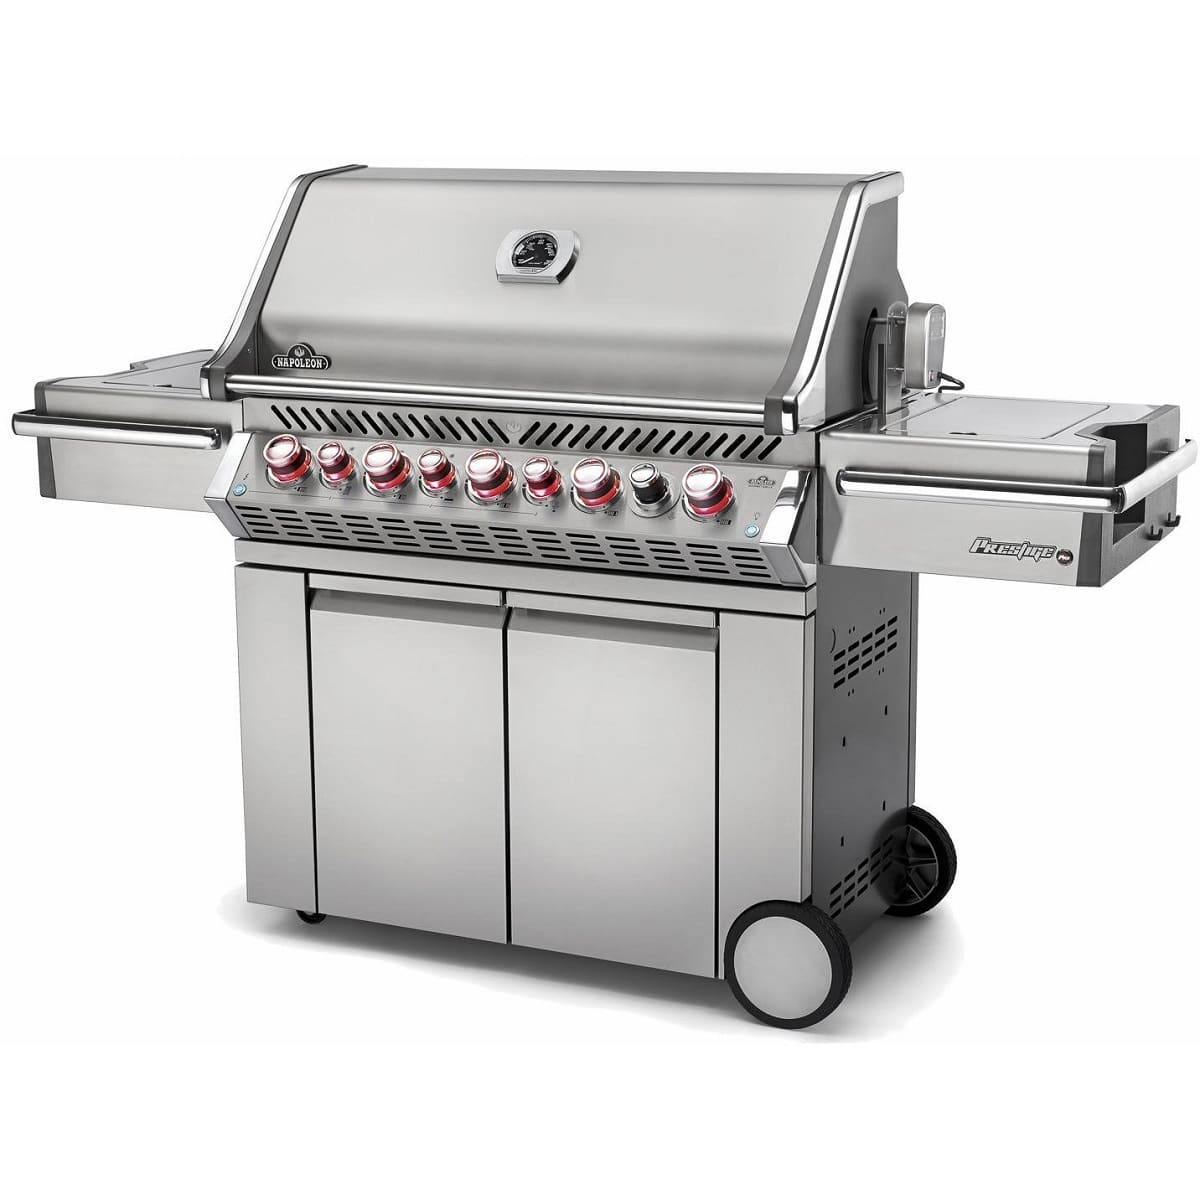 Best Gas Grill For Cooking Steaks